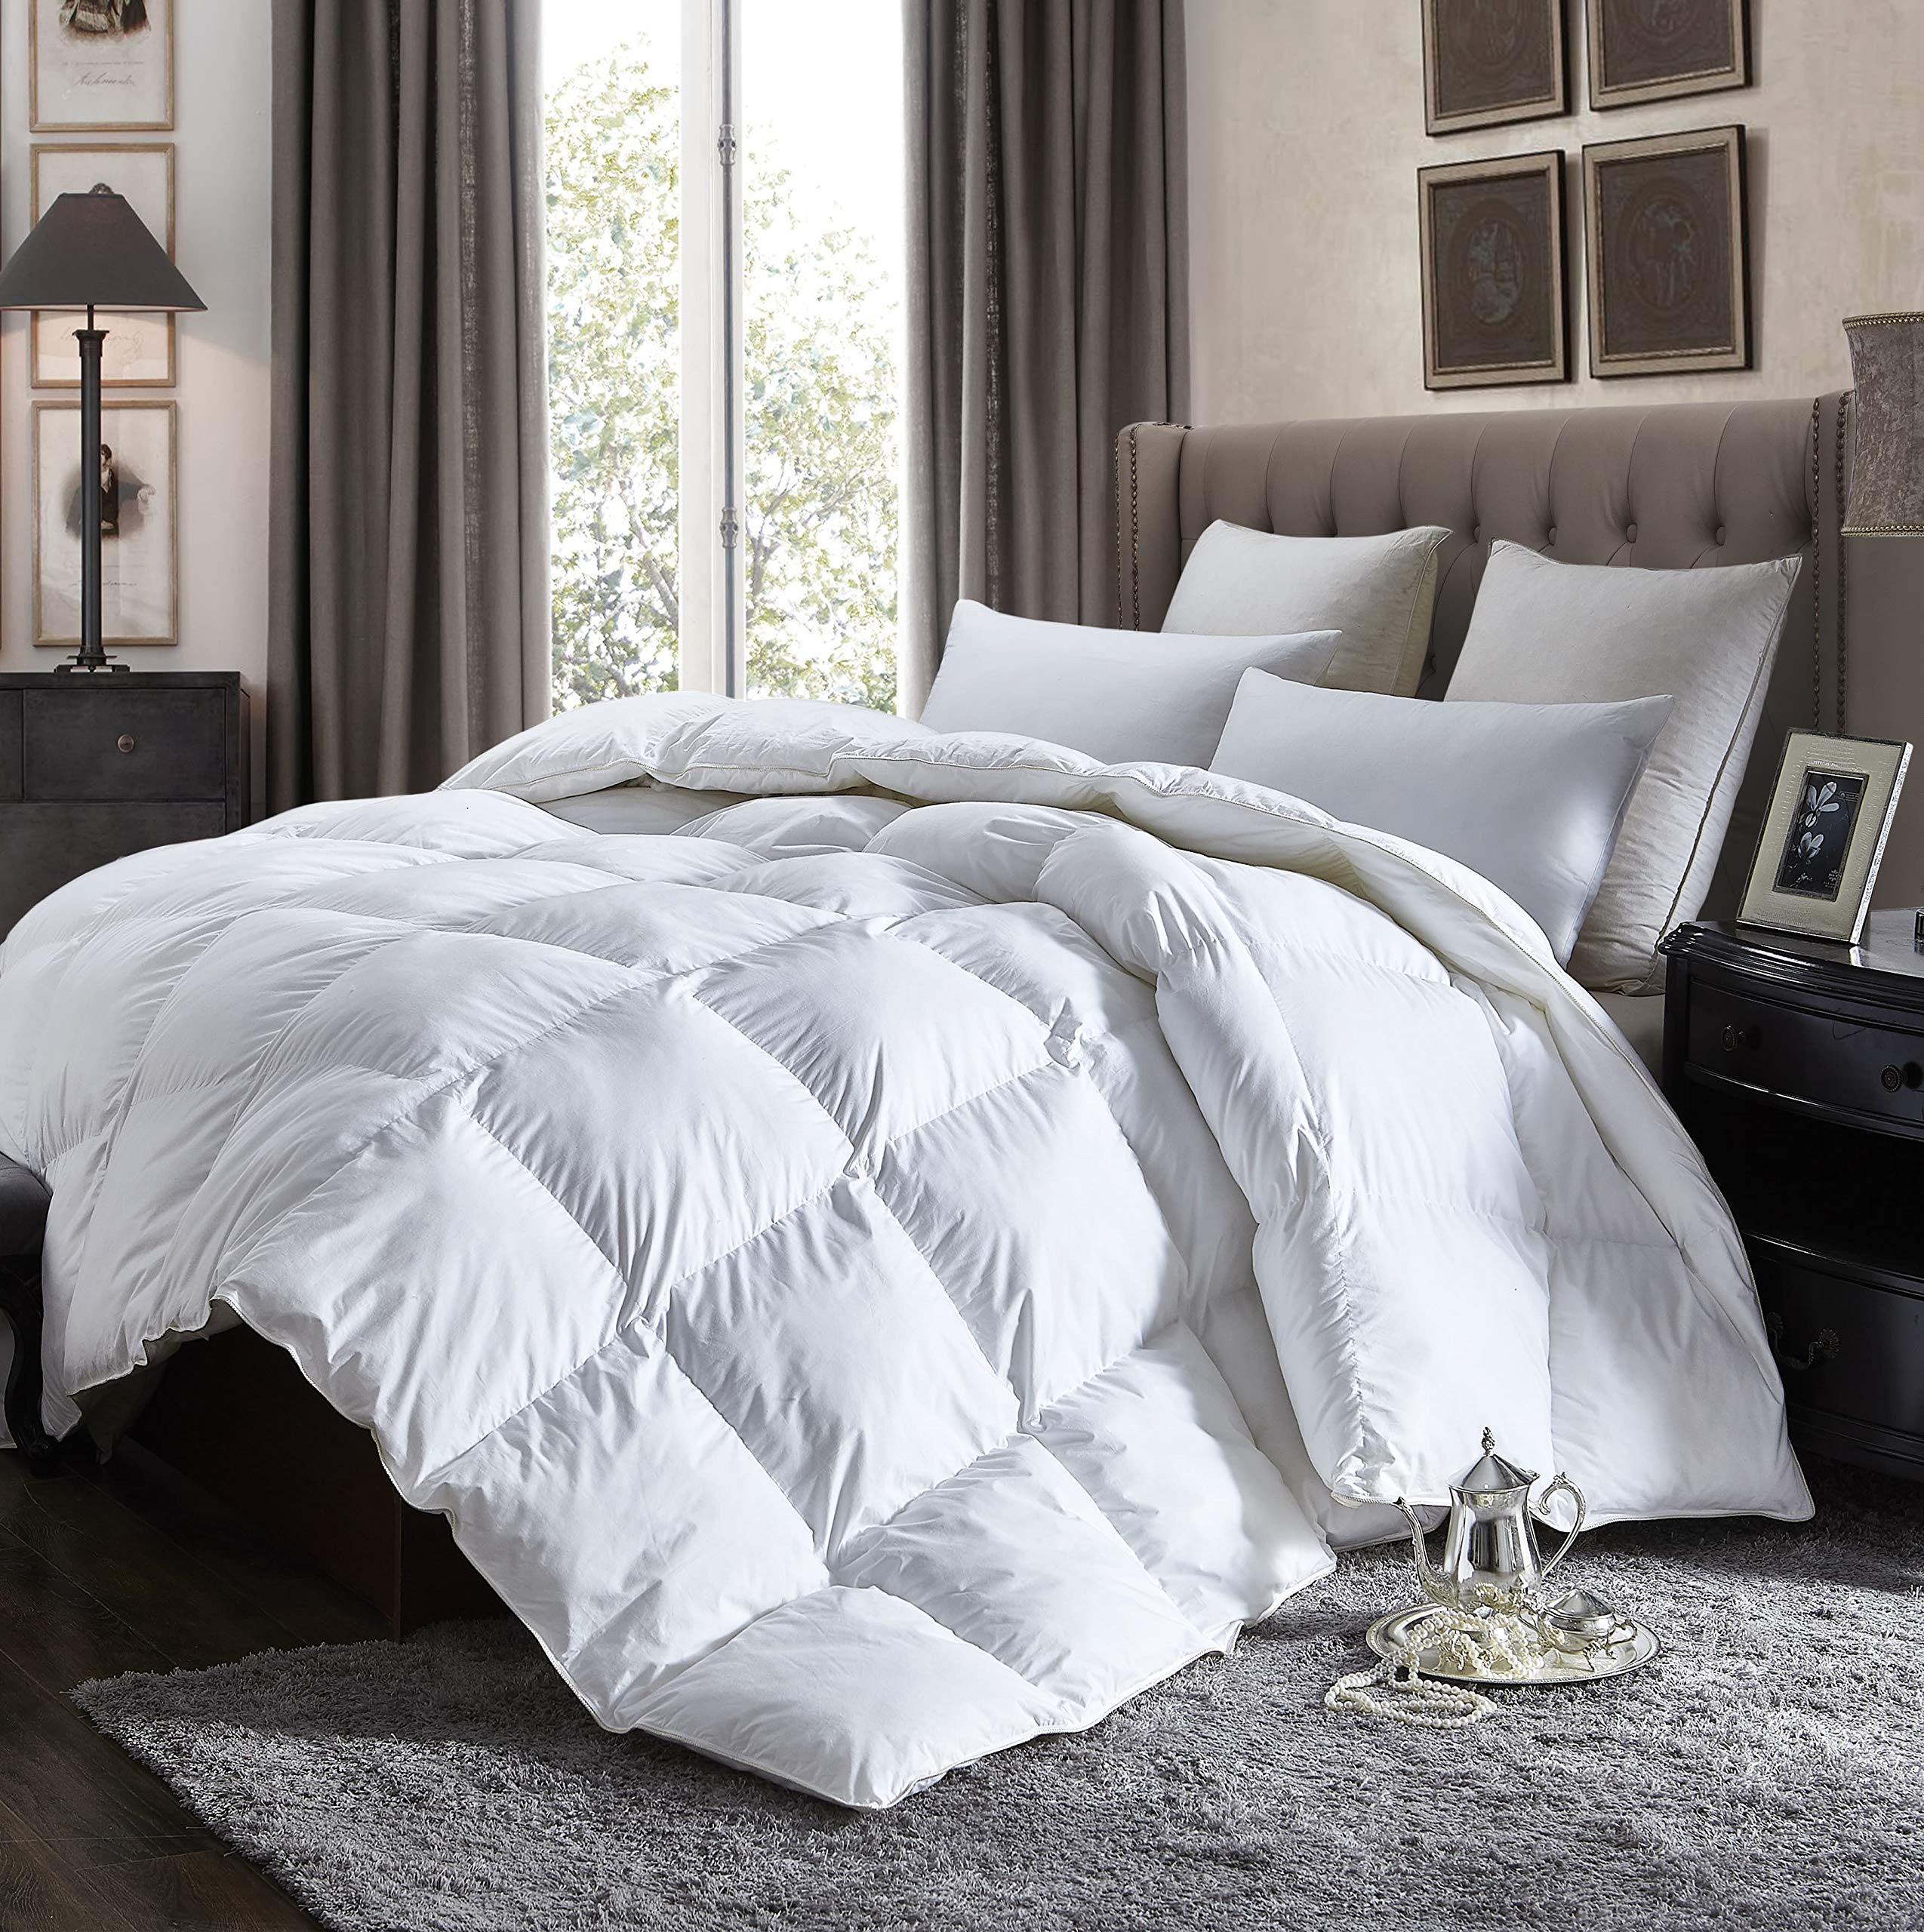 Luxurious king size lightweight goose down comforter duvet insert all season 1200 thread count 100 egyptian cotton 750 fill power 42 oz fill weight